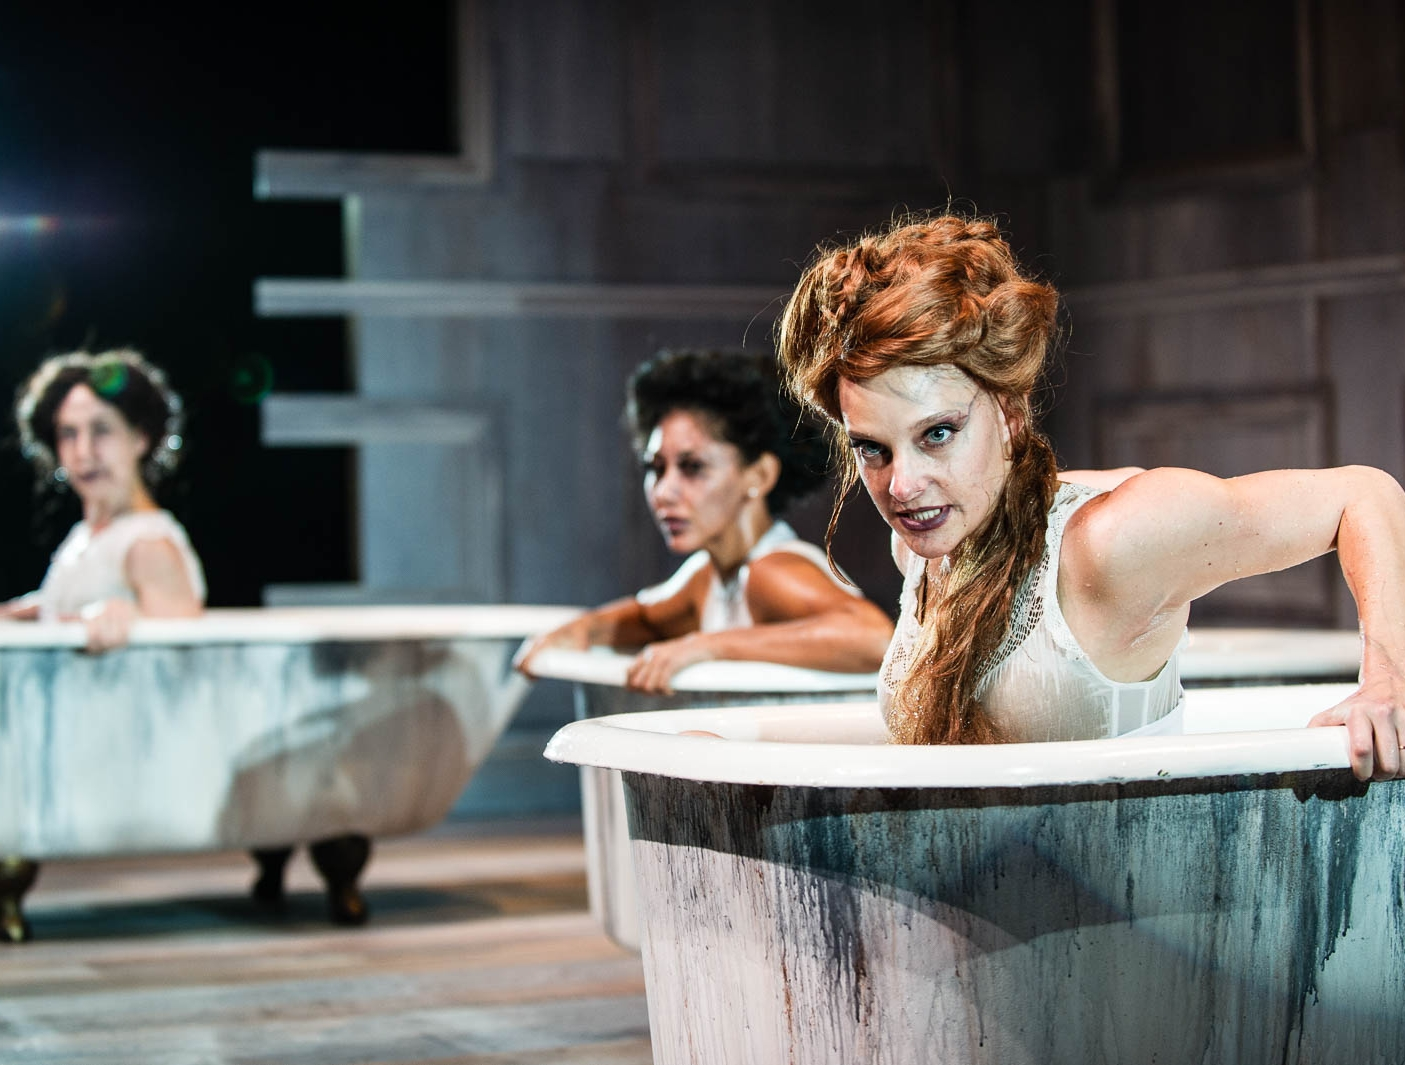 The drowning girls - by Beth Graham, Charlie Tomlinson & Daniela VlaskalicOct 23–Nov 11, 2018A haunting play about three brides who share two things in common: they all married the same man, and they are all dead. Rising from their clawfoot bathtubs, Bessie, Alice, and Margaret share evidence against a murderous man in a chilling ghost story that recounts the crimes.Learn More BUY TICKETS